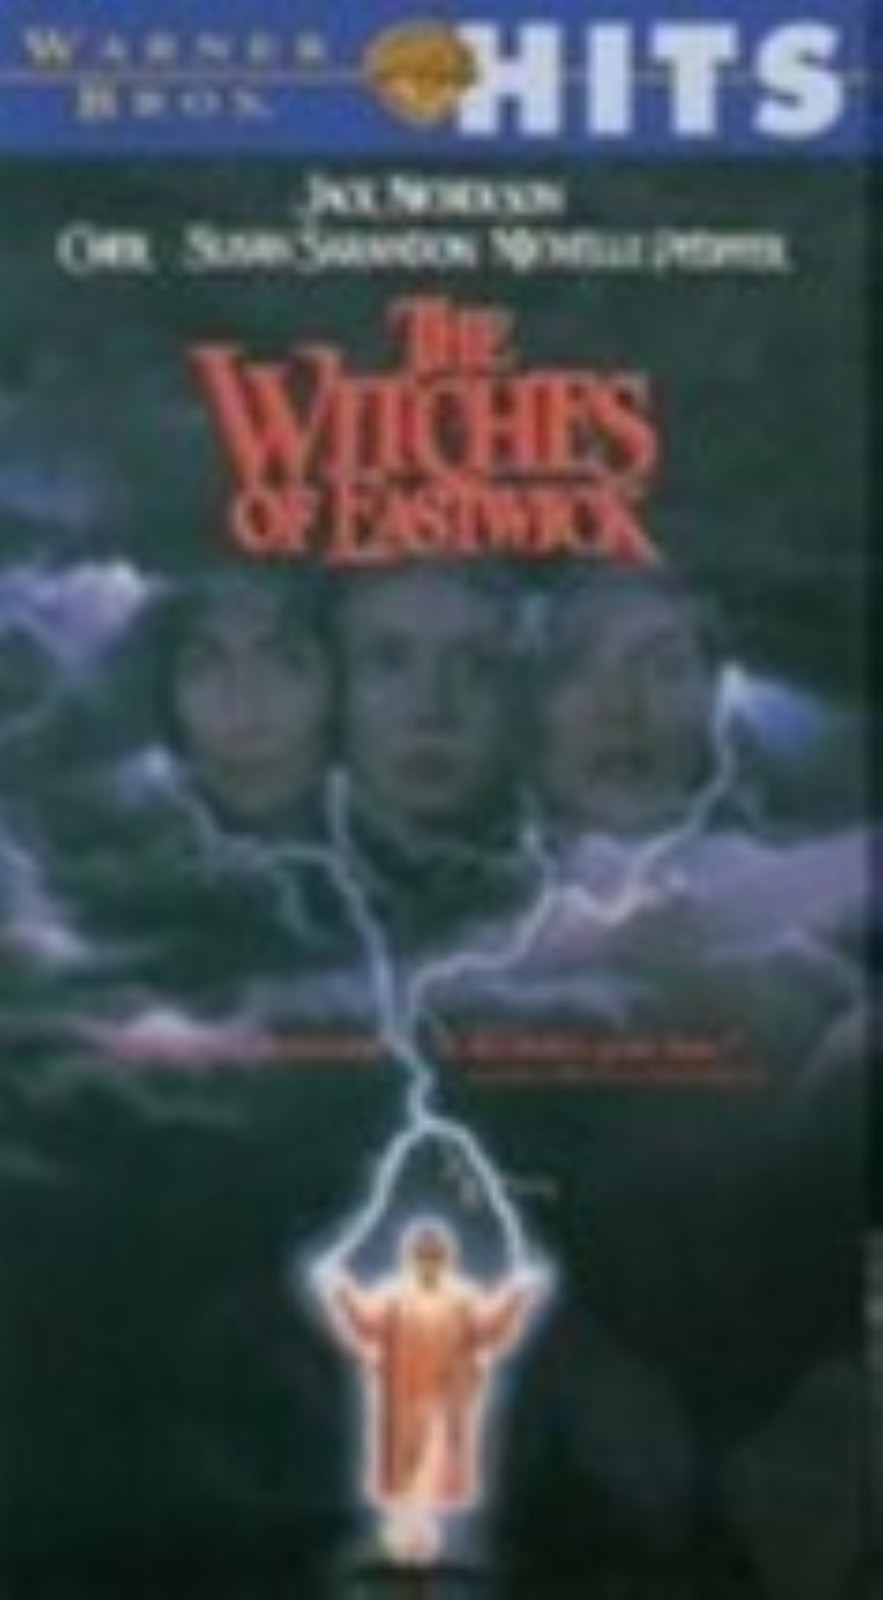 The Witches of Eastwick Vhs